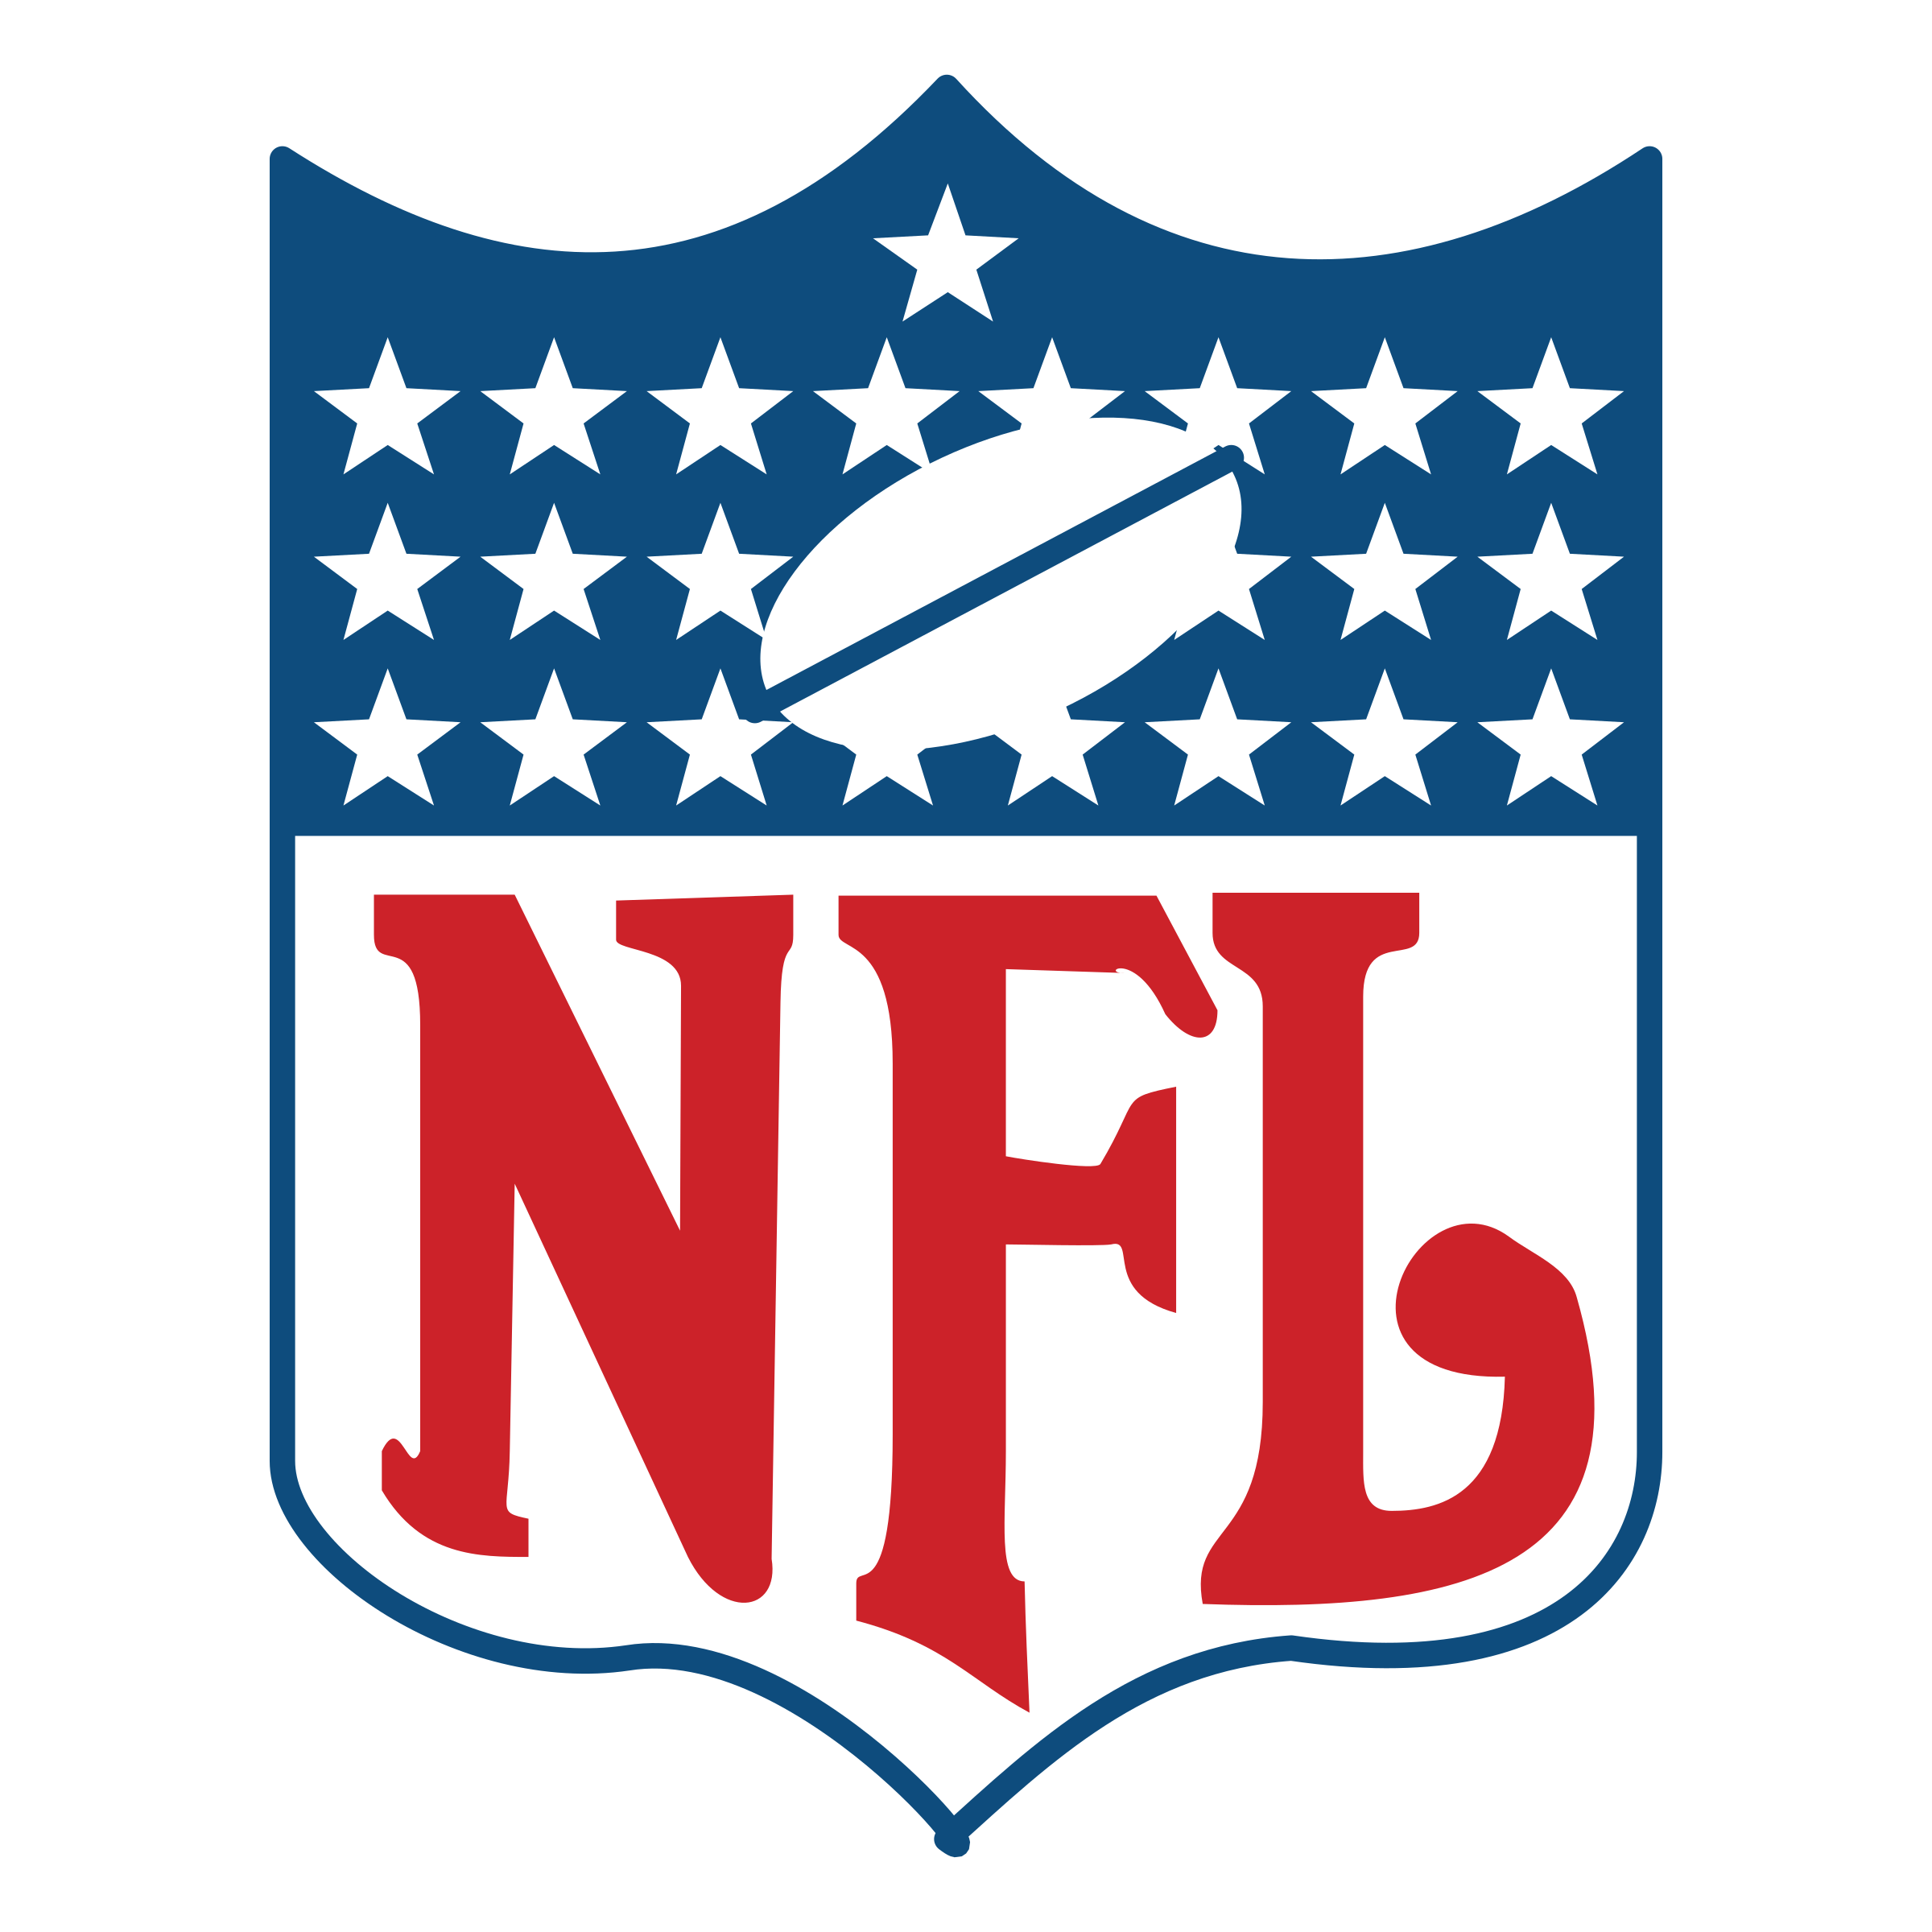 NFL Logo - NFL Logo PNG Transparent & SVG Vector - Freebie Supply